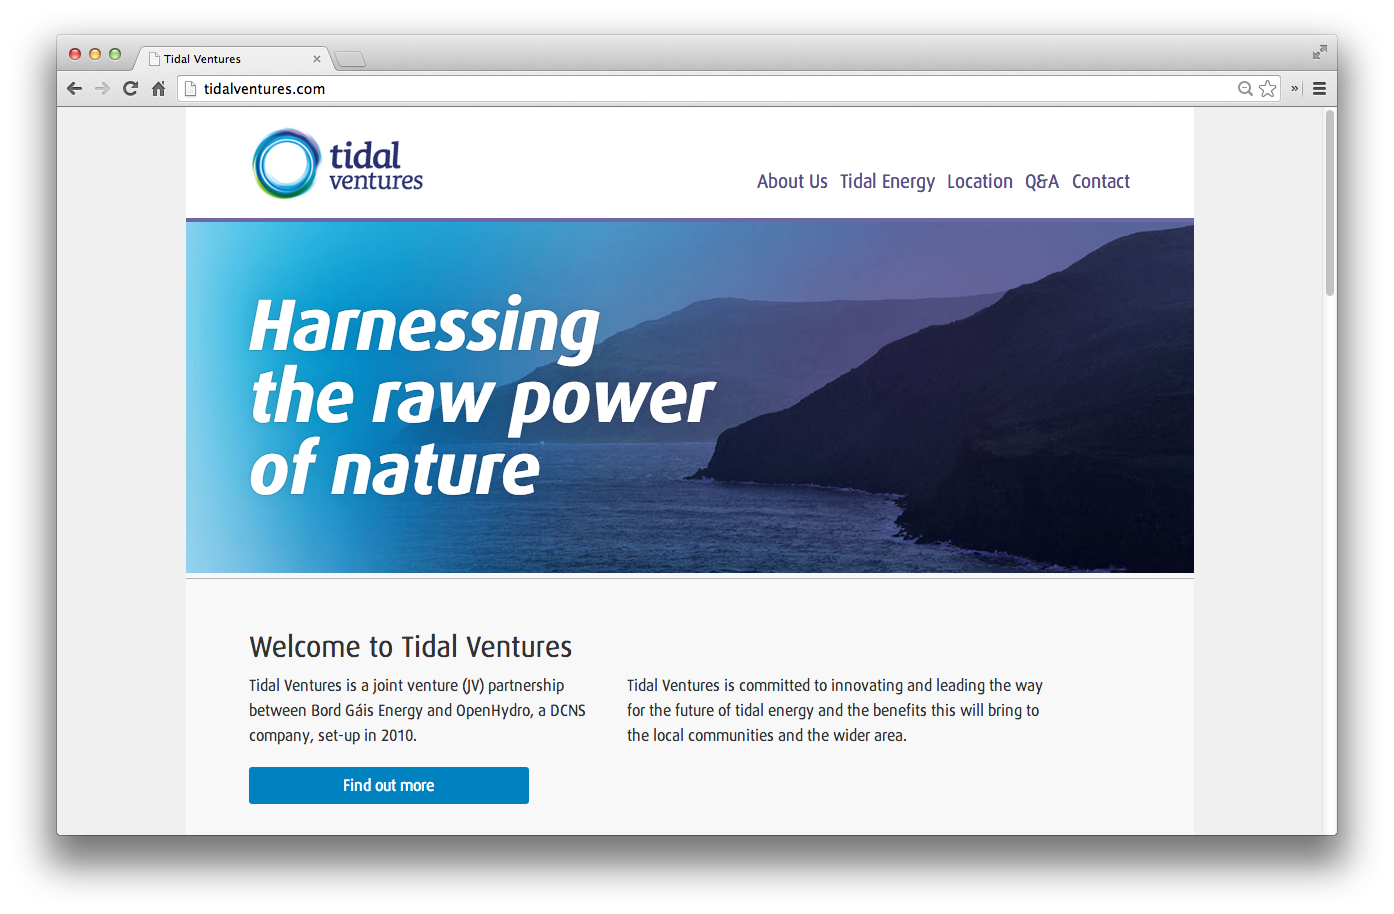 Cover image: Tidal Ventures website (2013)